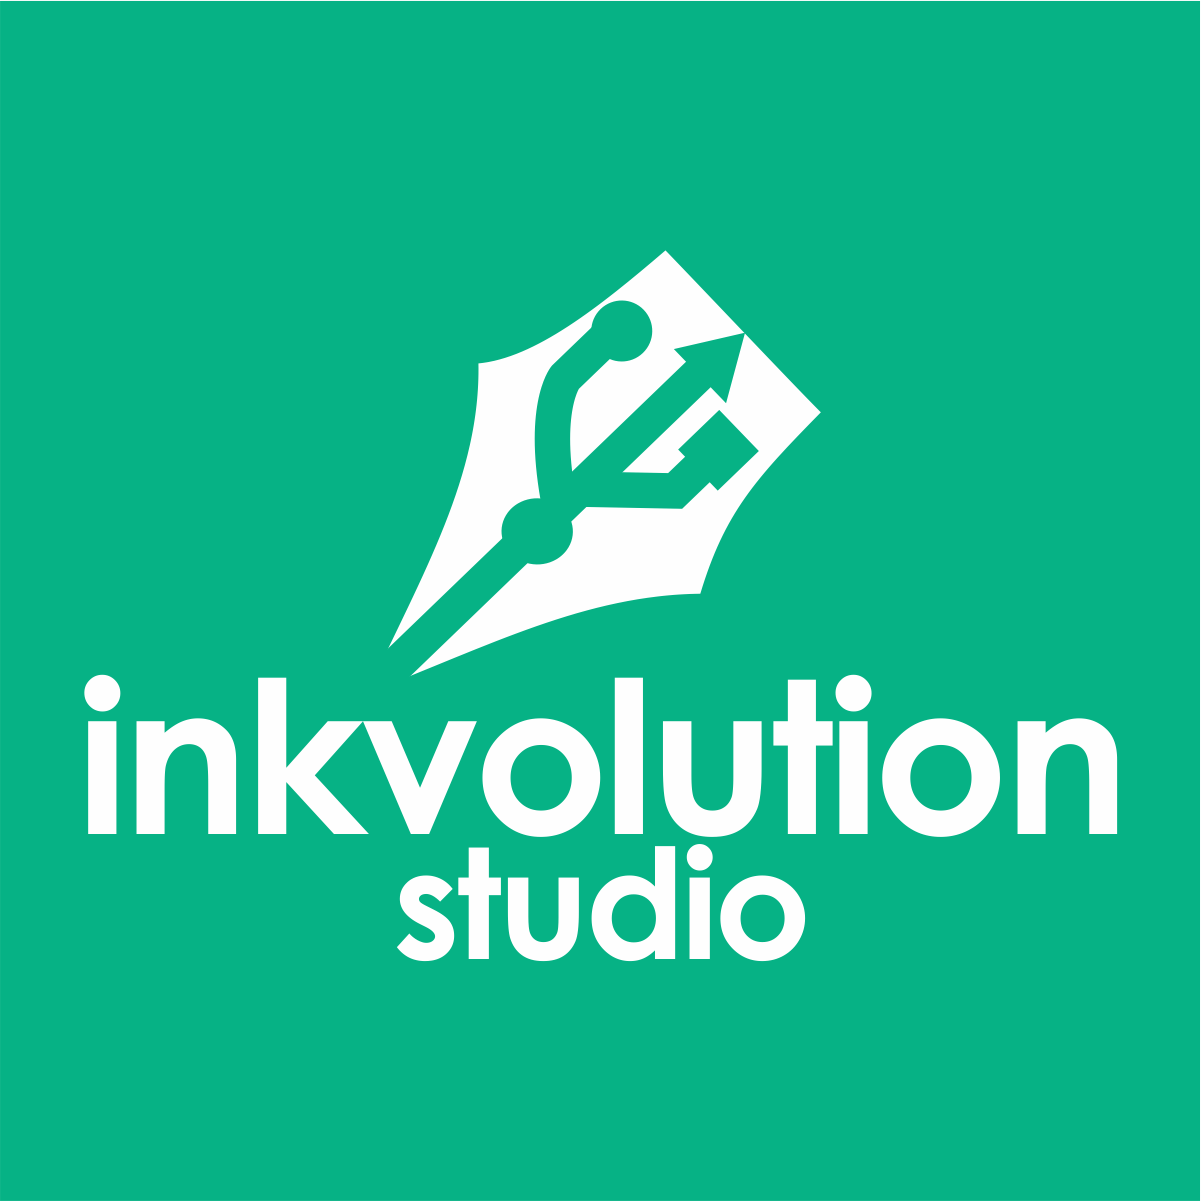 Inkvolution Studio